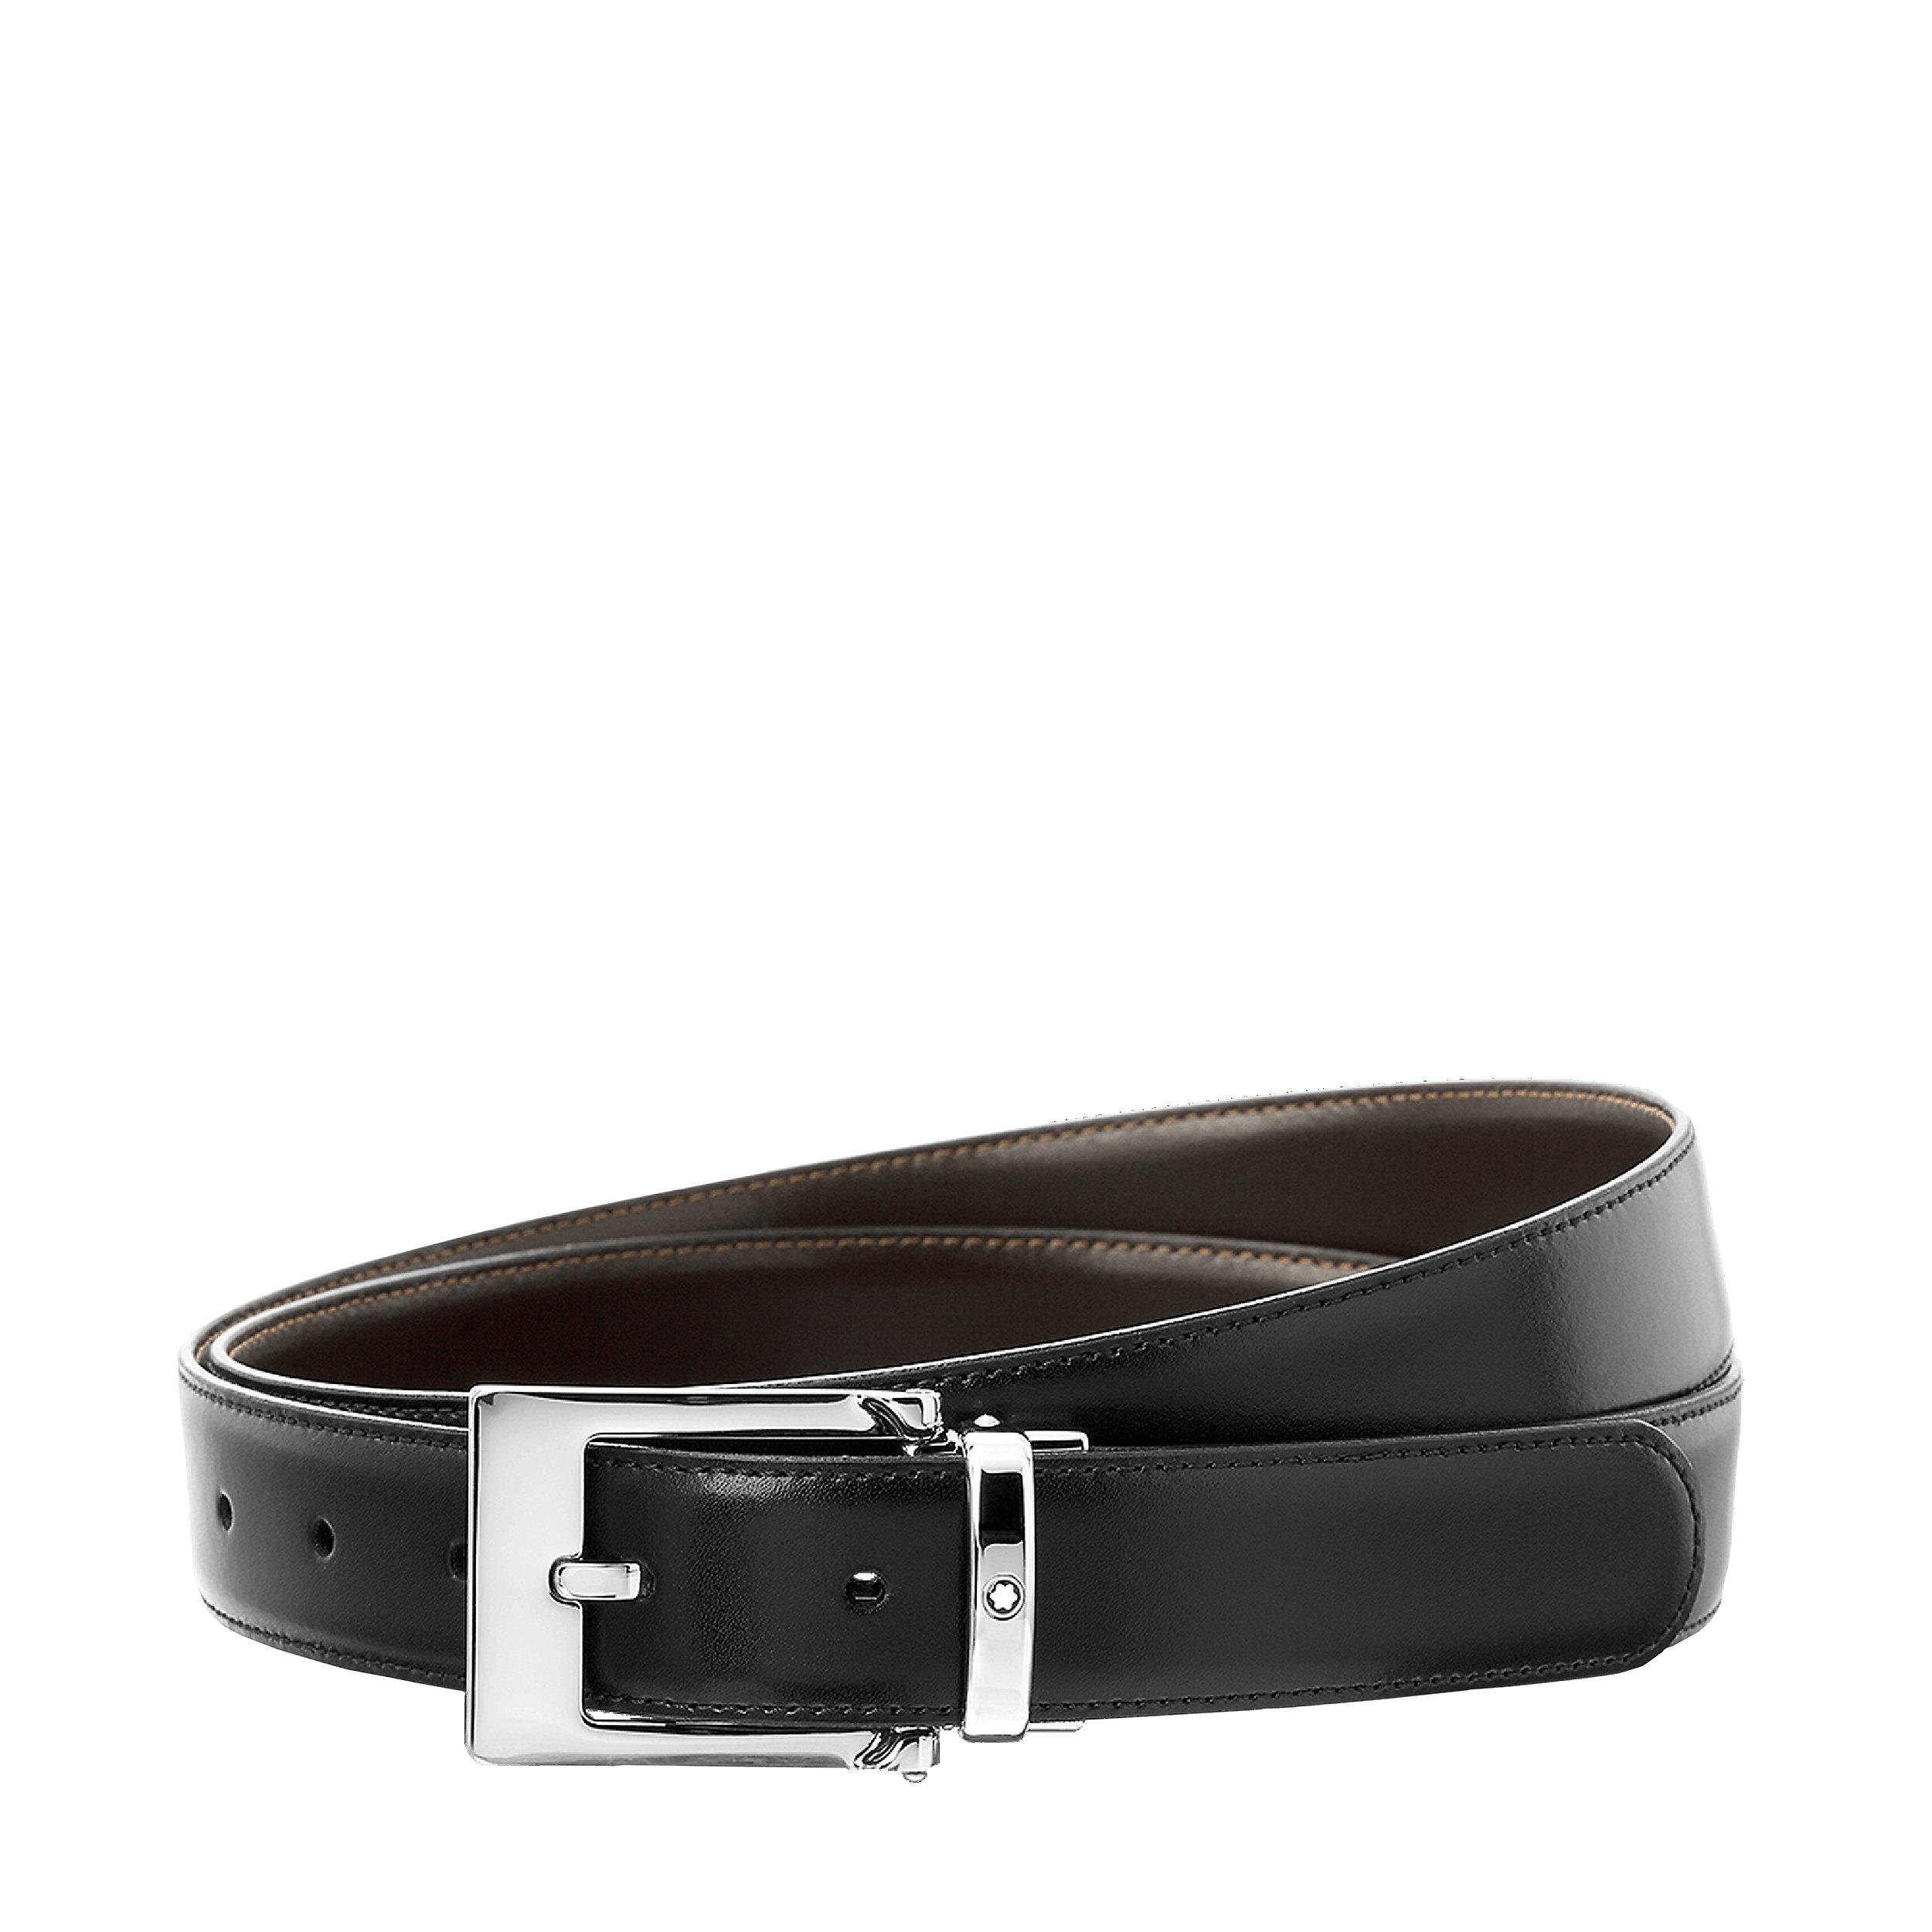 Reversible Business Belt cut-to-size rect. pin buckle Montblanc Belts